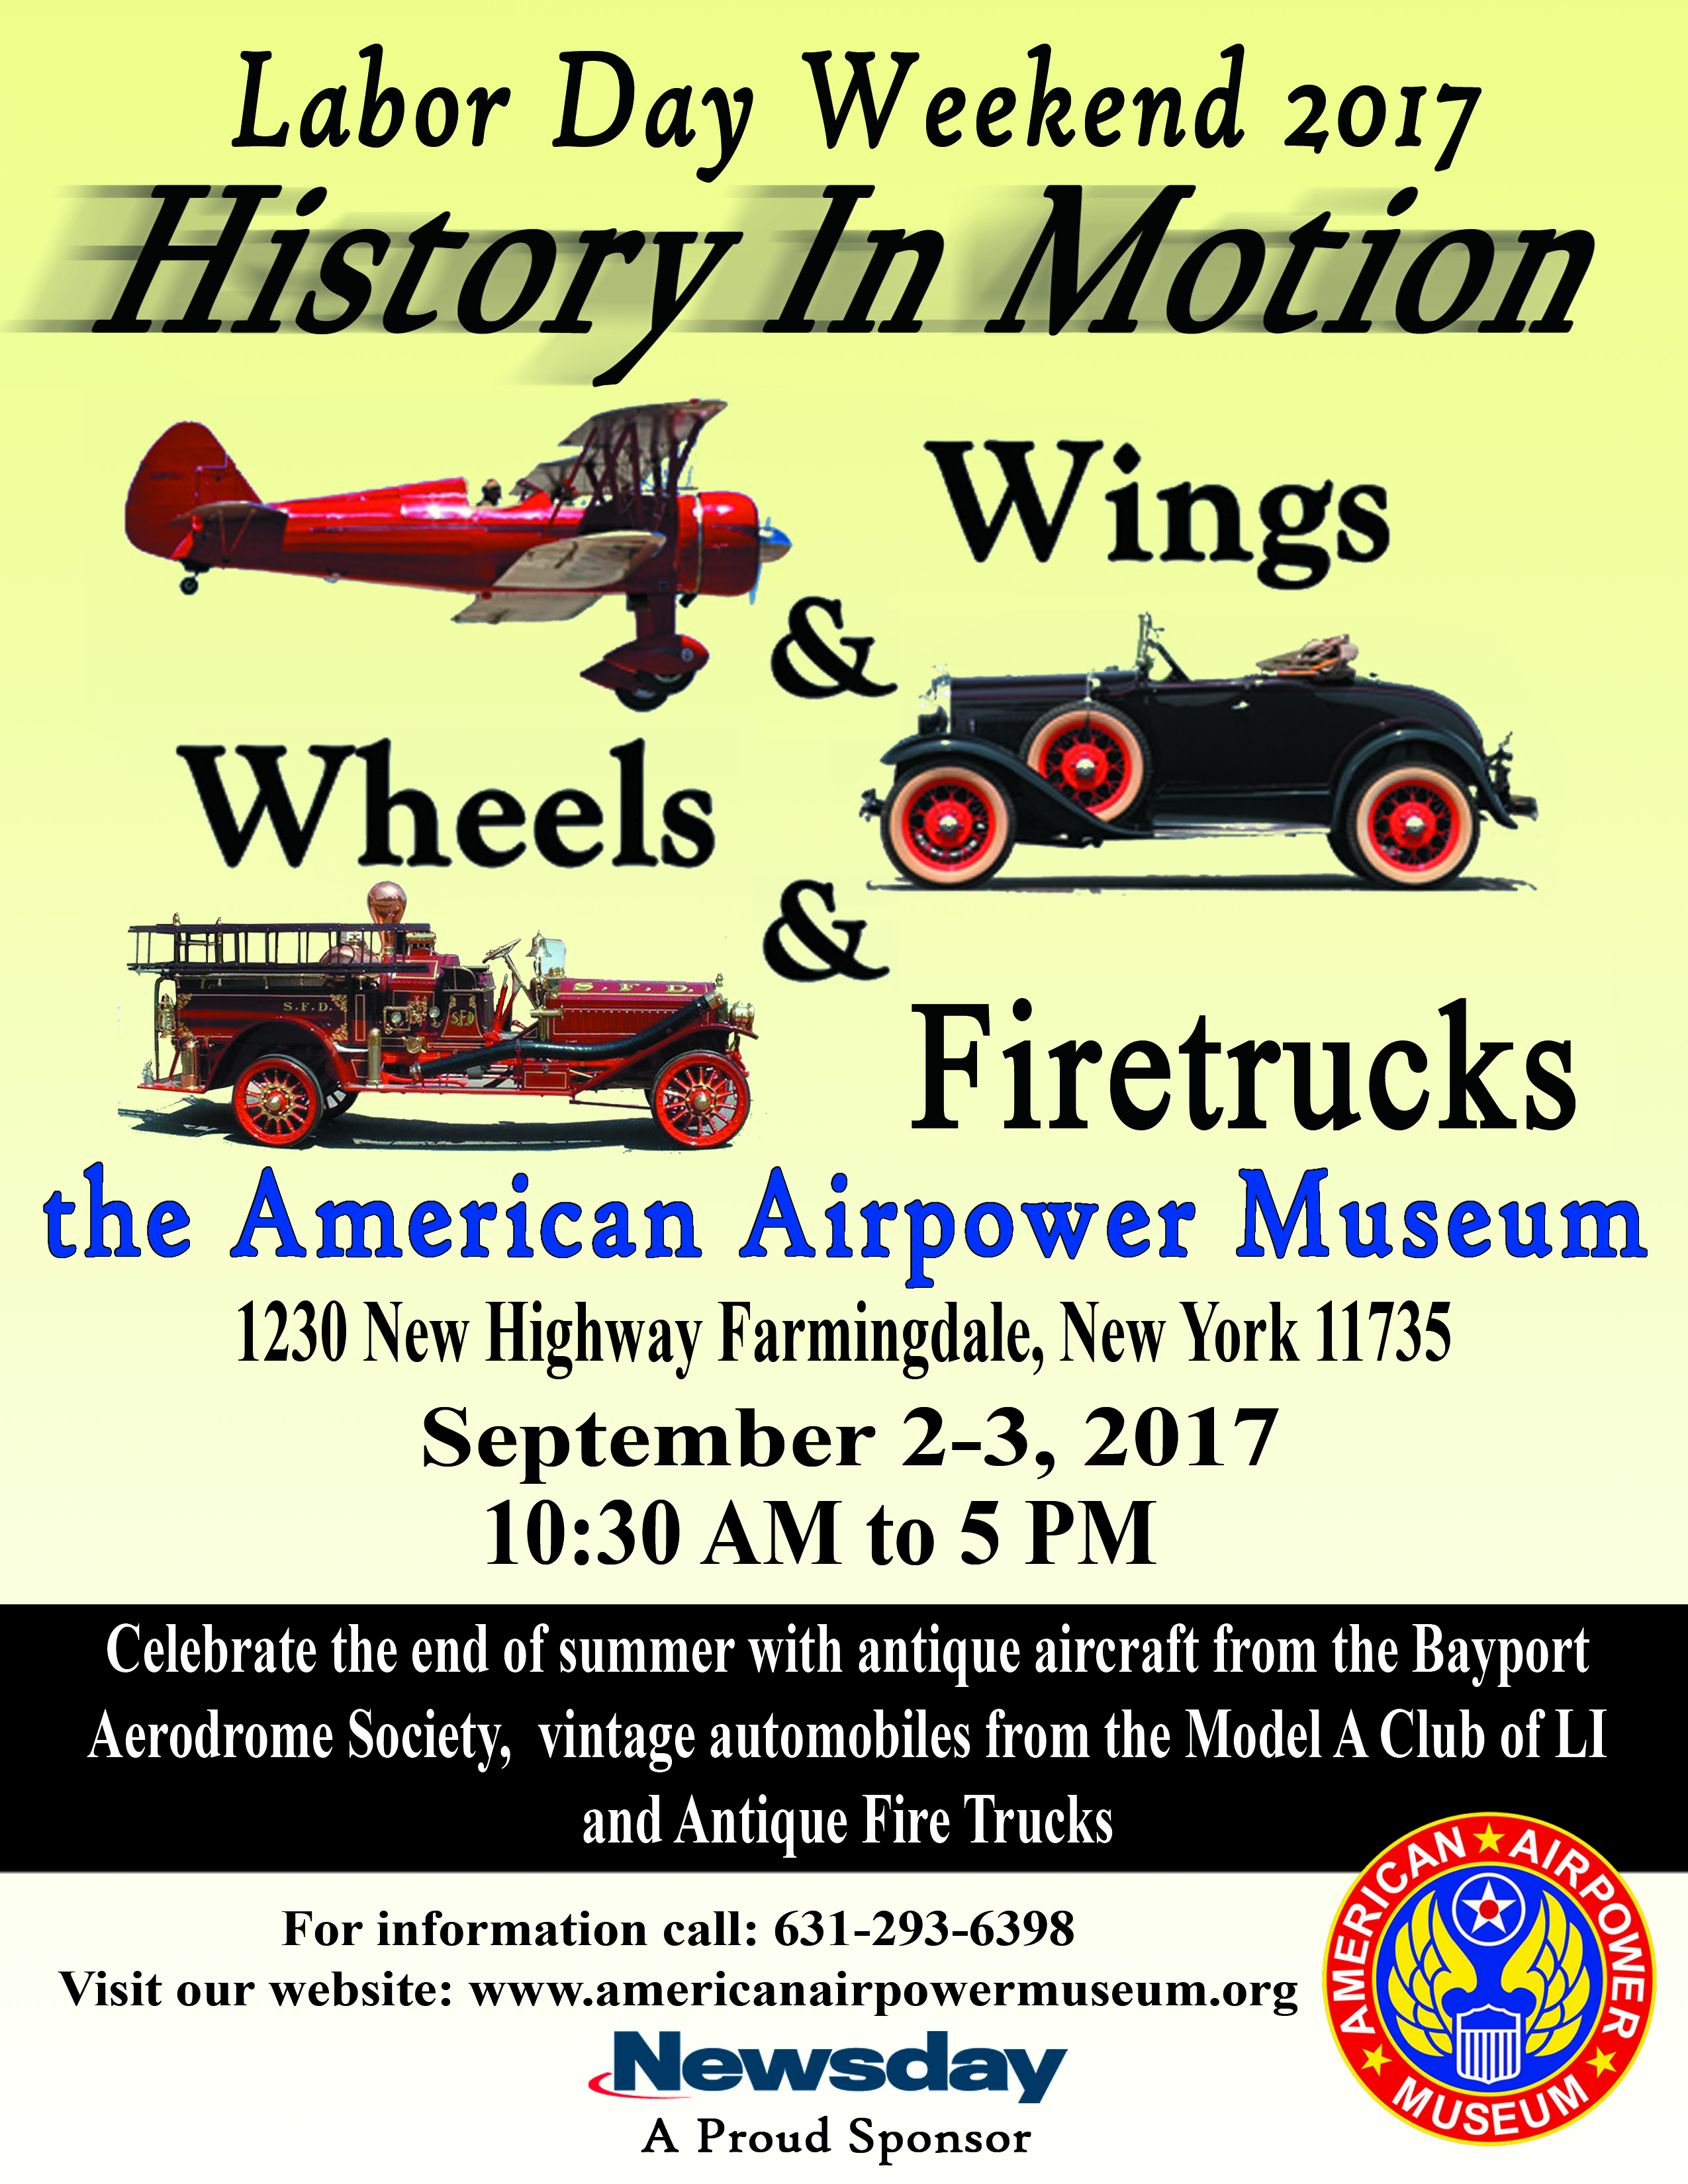 Labor Day Weekend 2017-History In Motion-Wings & Wheels & Firetrucks